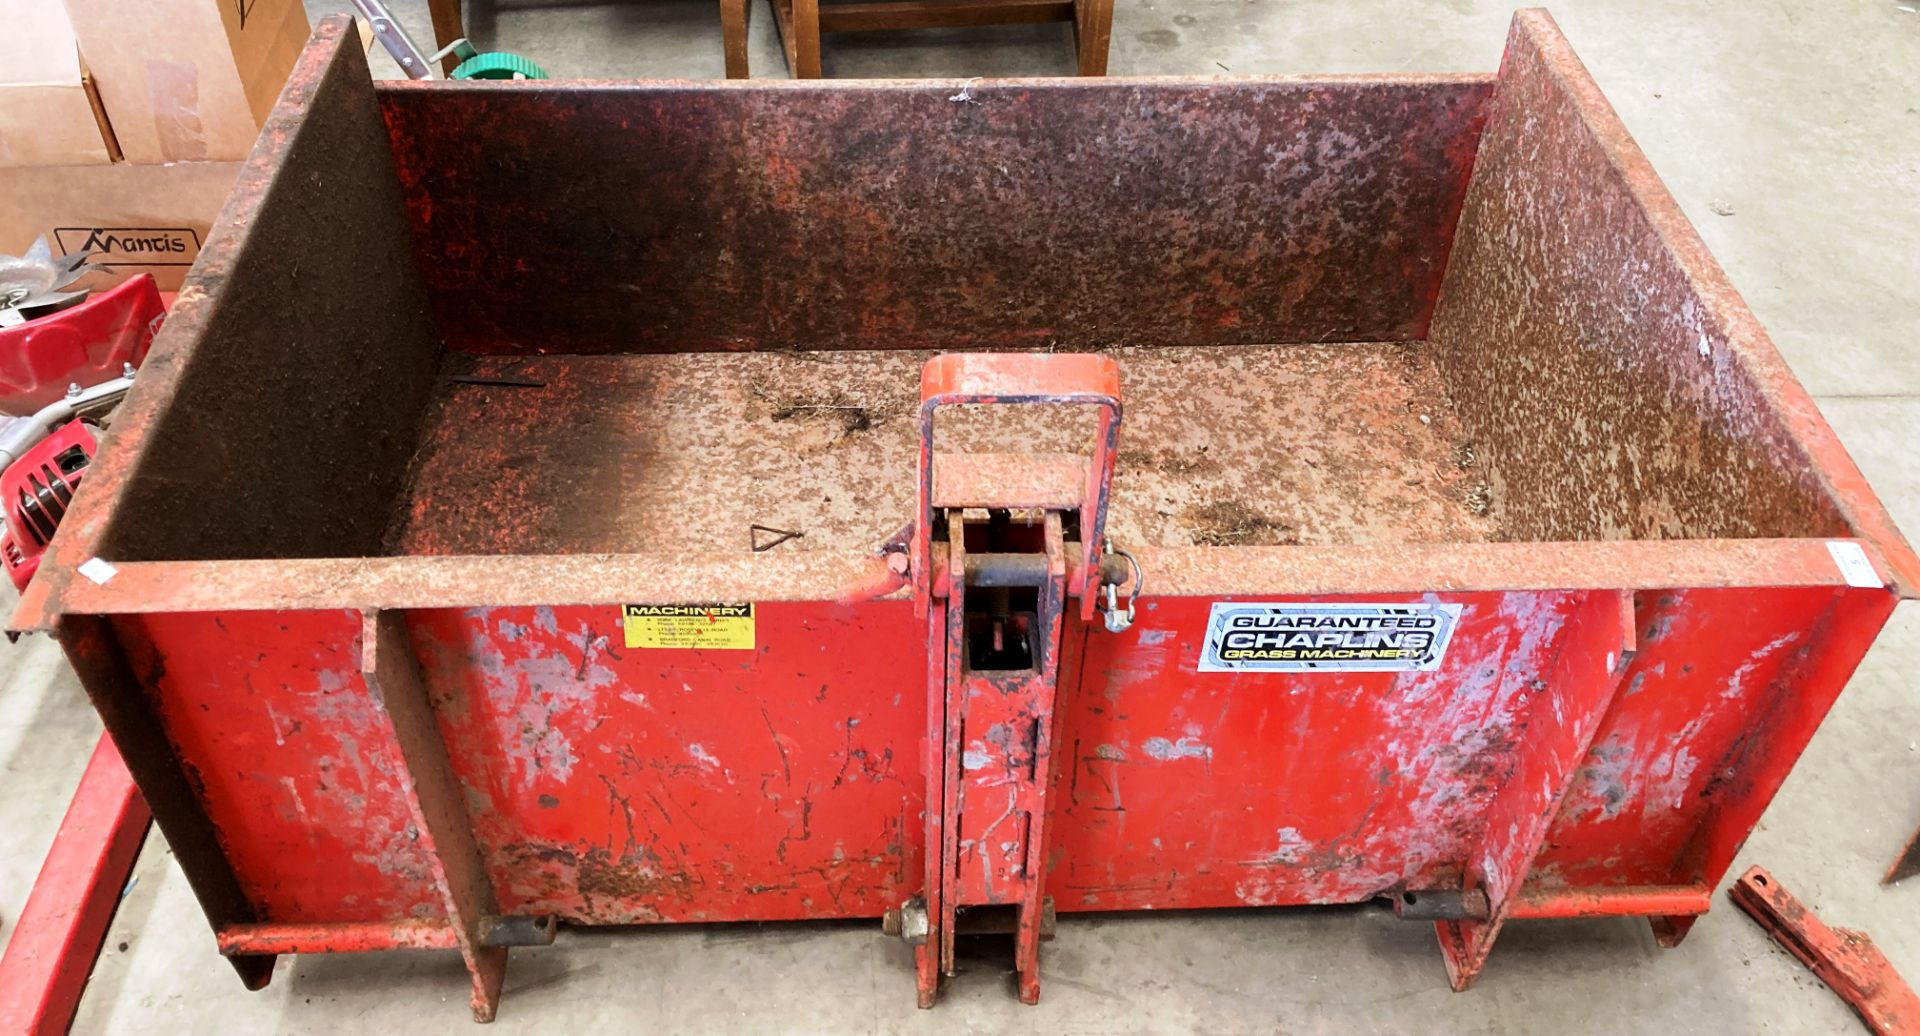 A LINK BACK MOUNTING METAL COLLECTION BOX 122 x 77 x 48cm deep *Please note,